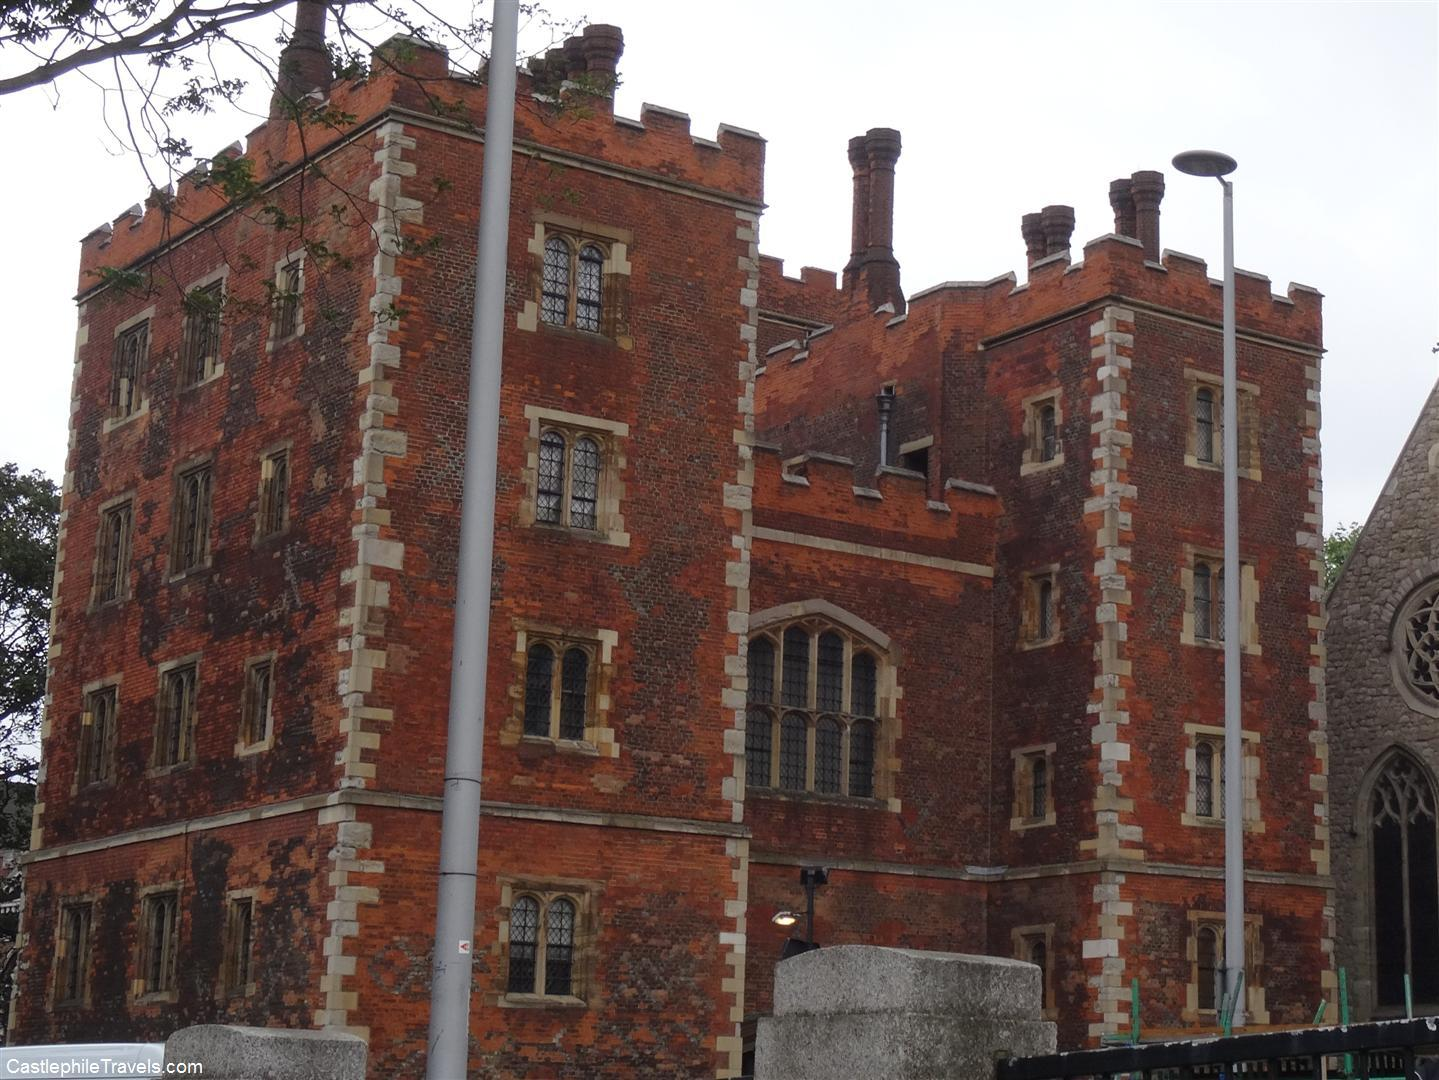 Lambeth Palace, the London home of the Archbishop of Canterbury